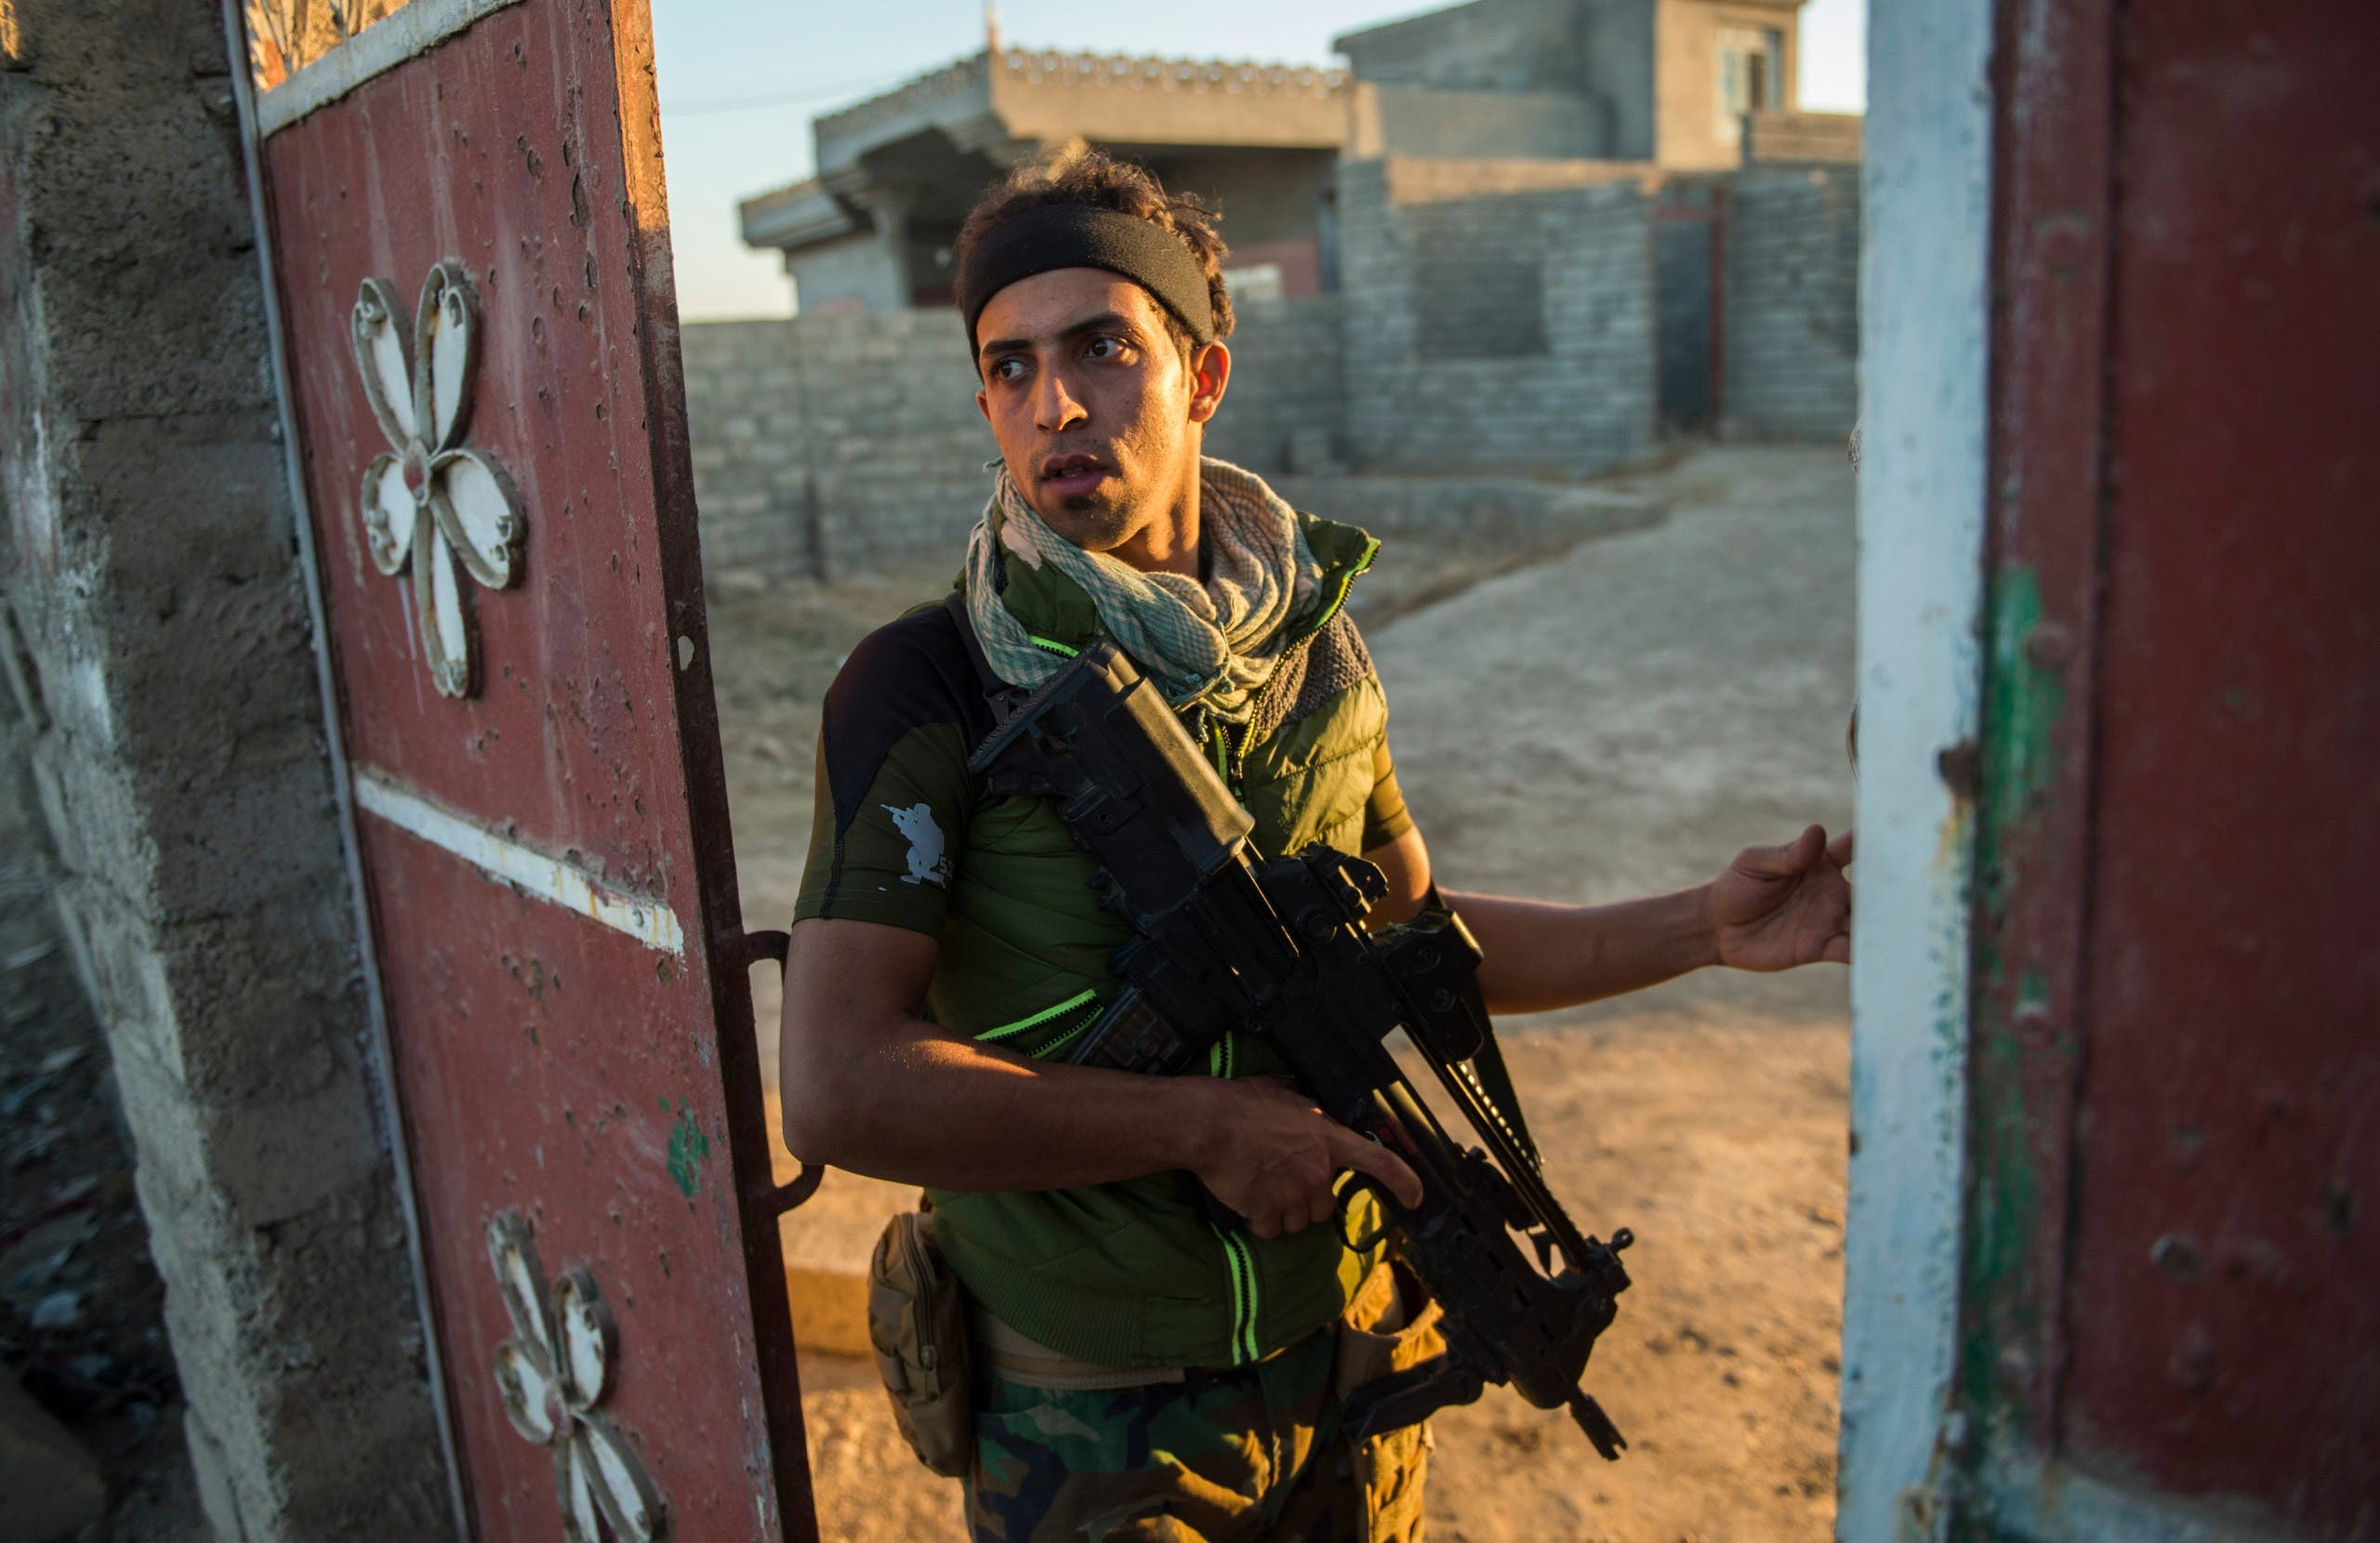 A member of forces from Iraq's elite Rapid Response Division patrols on November 19, 2016 in the village of Tall Adh-Dhahab, located some 10 kilometres (6 miles) south of Mosul.